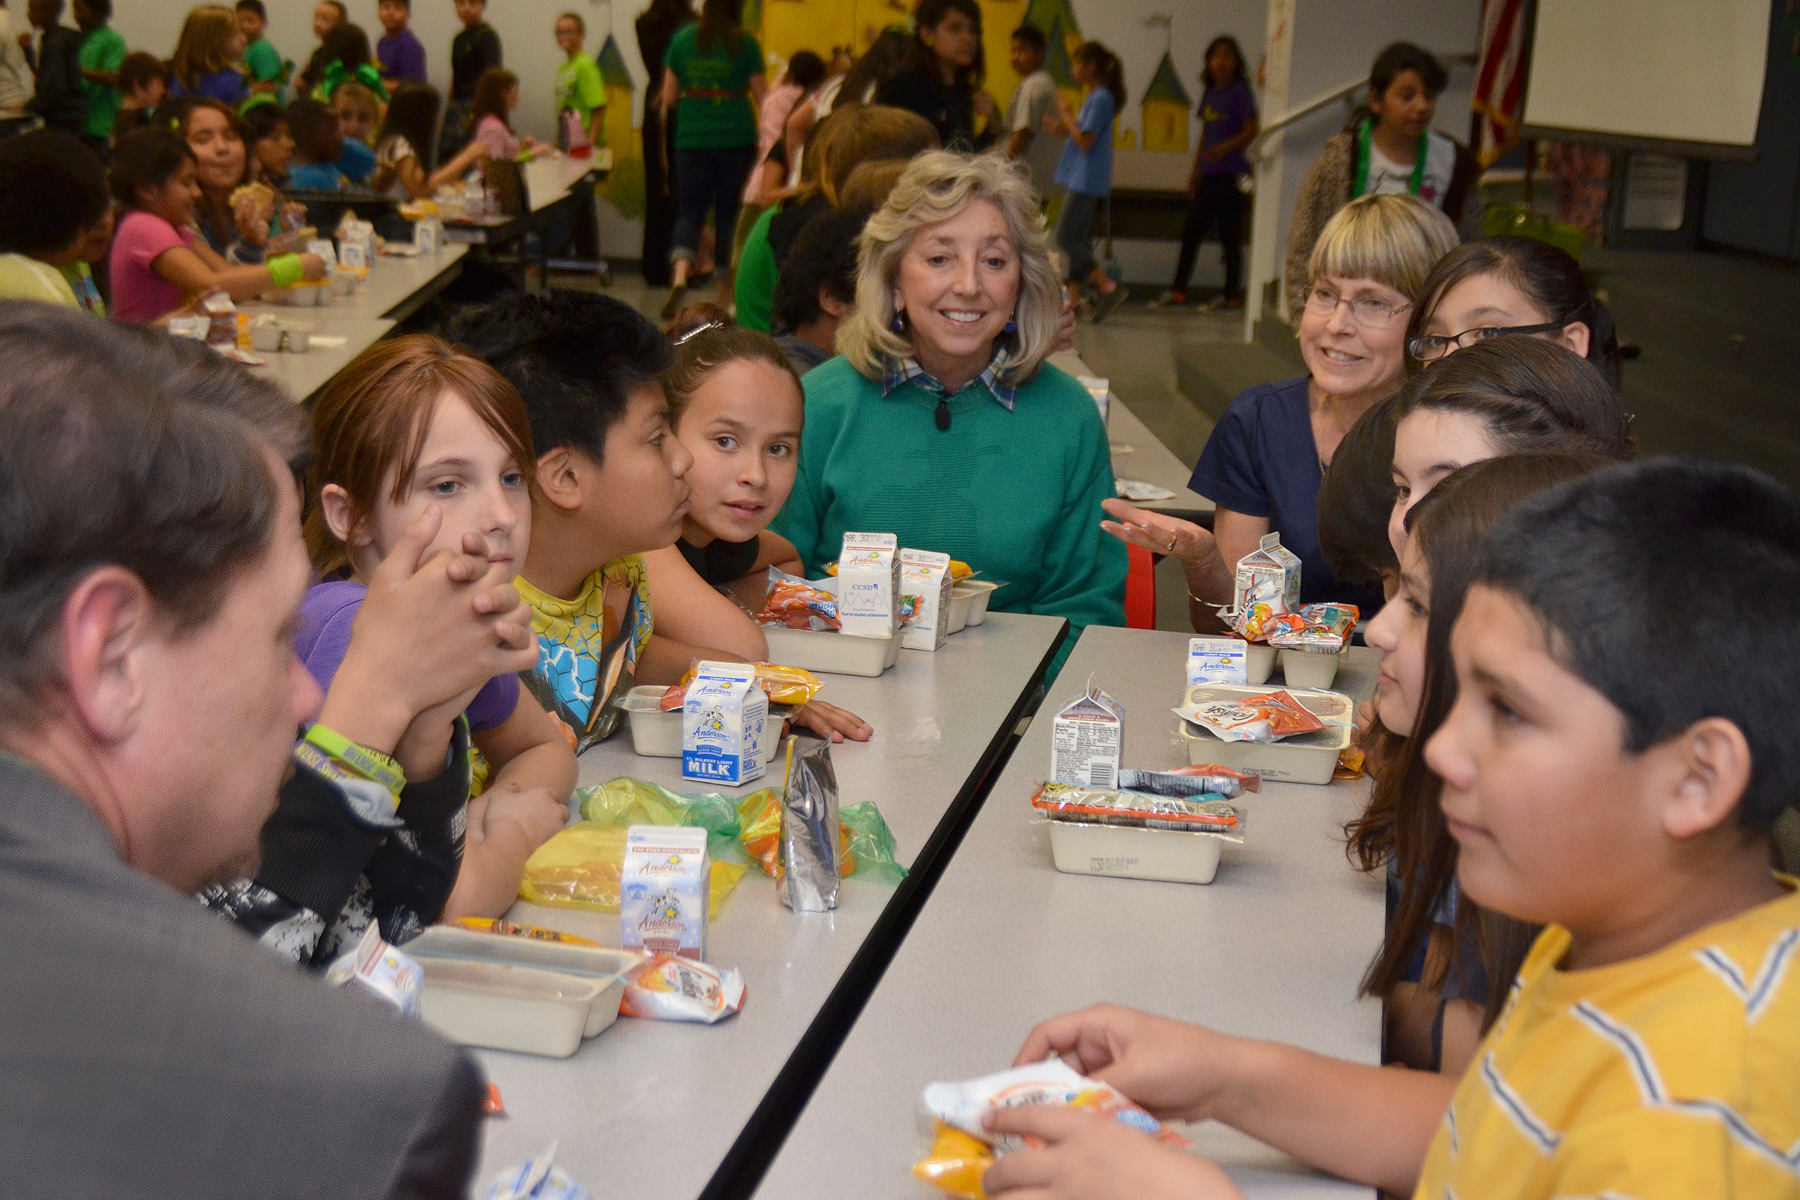 Titus introduced legislation designed to combat childhood hunger at school